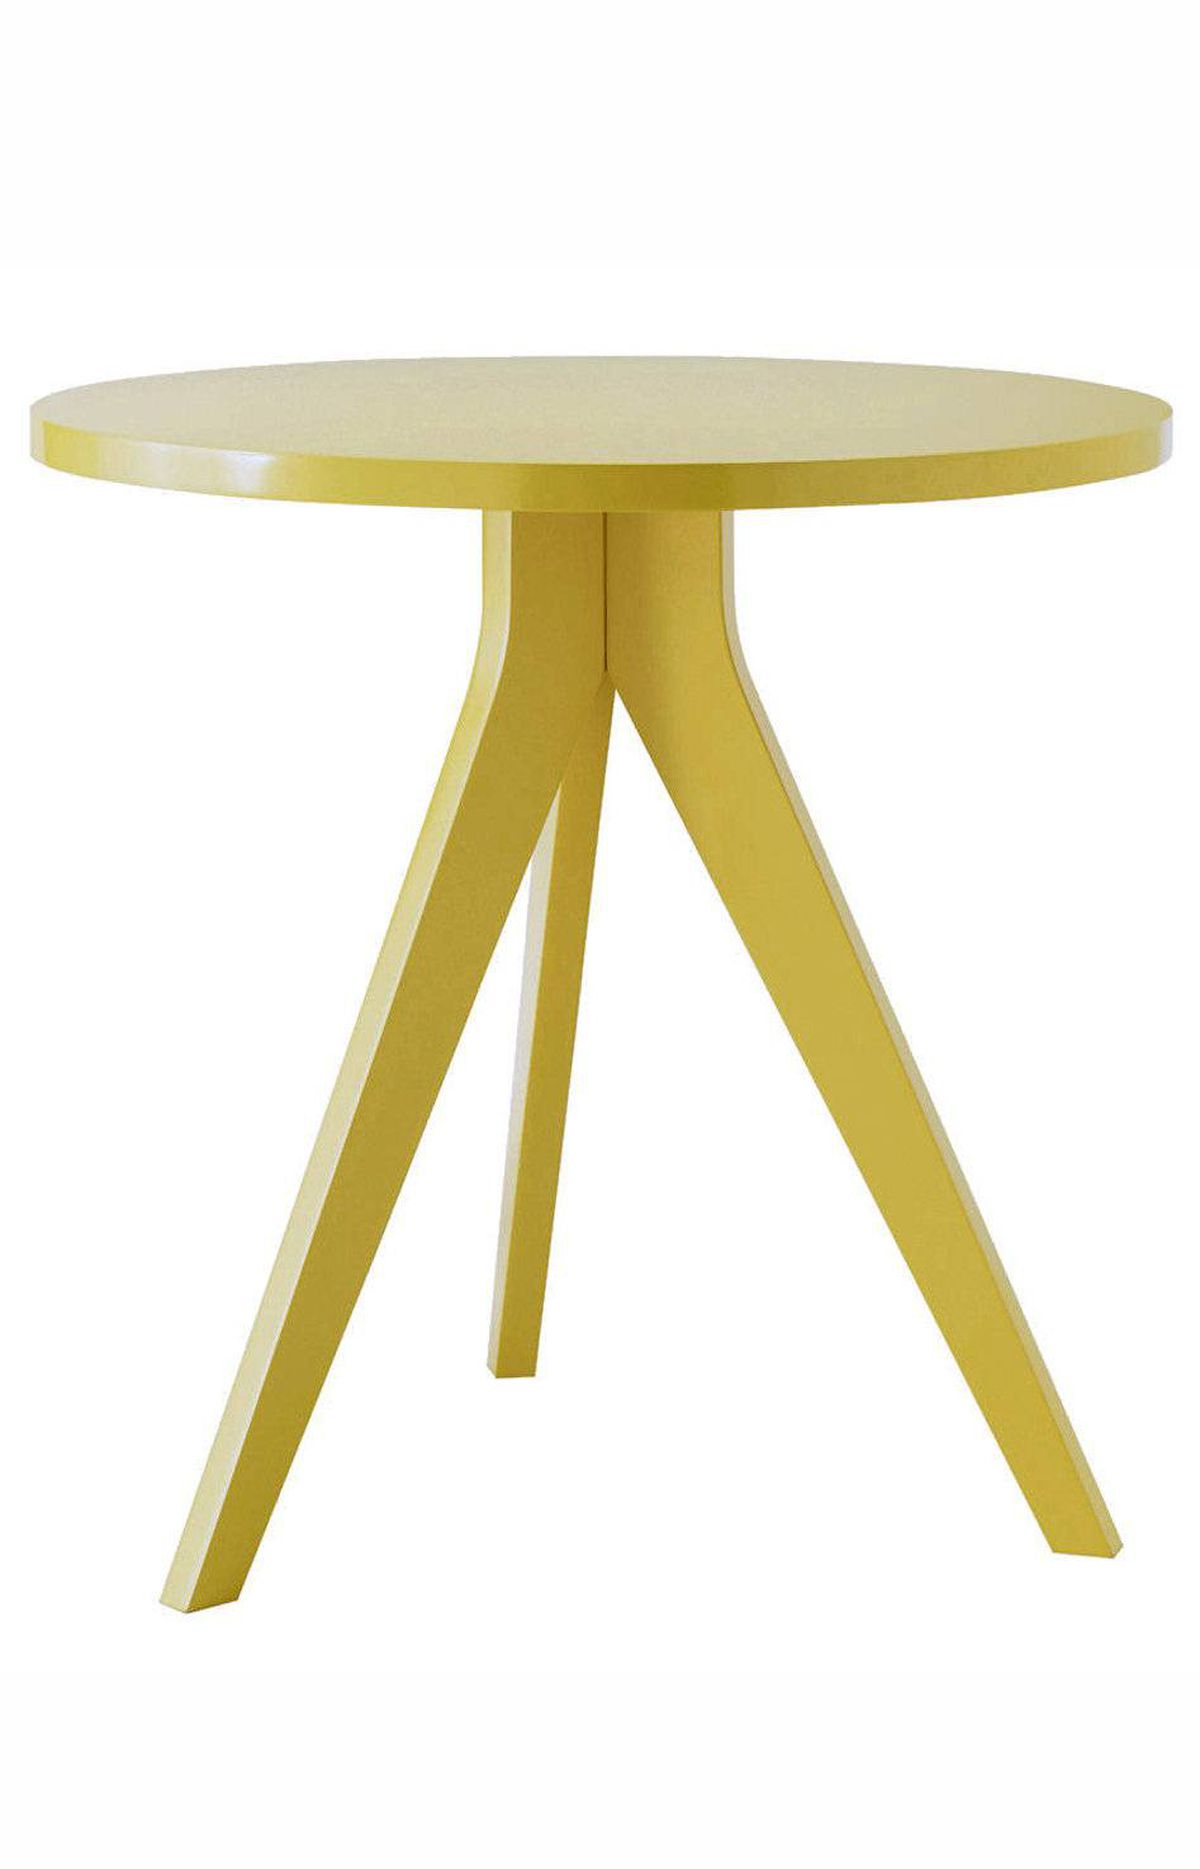 WEST ELM'S TAKE At West Elm, there's ample opportunity to bring home the latest fashionable hue, including this season's tangy citrus tones, without making a big-ticket investment. Among my favourites from the American chain right now: a zingy yellow tripod table ($207.59 through www.westelm.com).